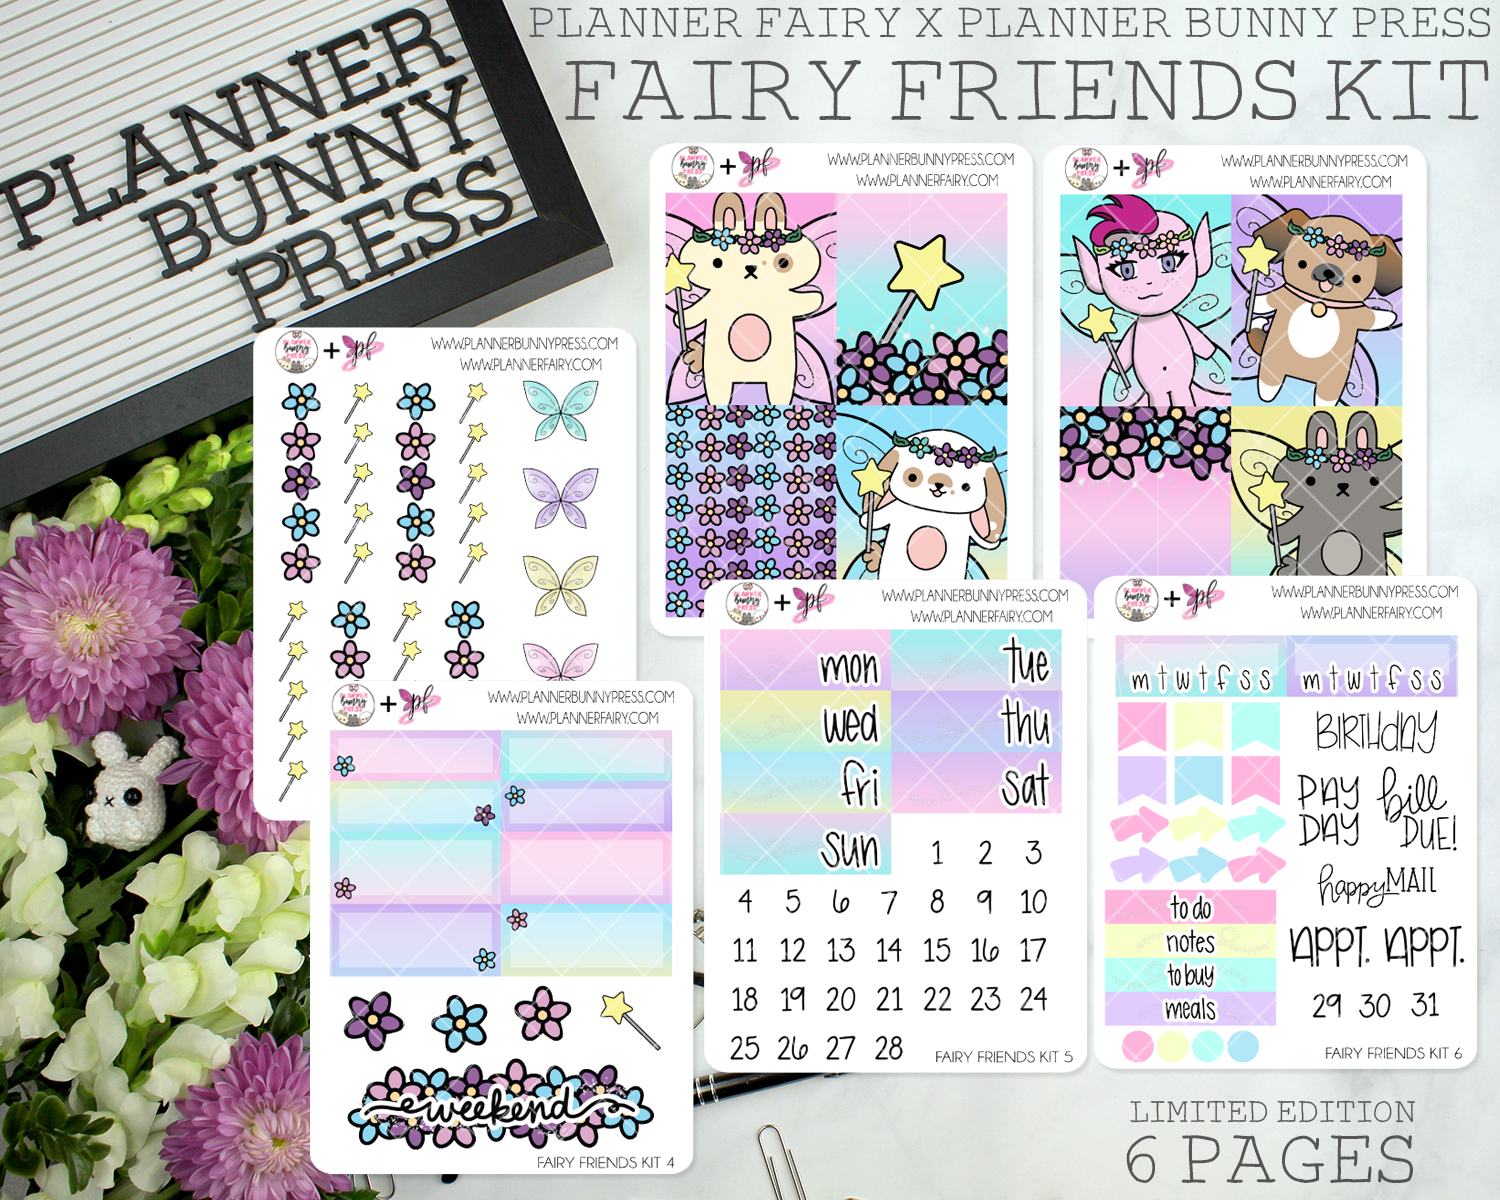 Fairy Friends Mini Kit | PLANNER FAIRY X PLANNER BUNNY PRESS COLLAB